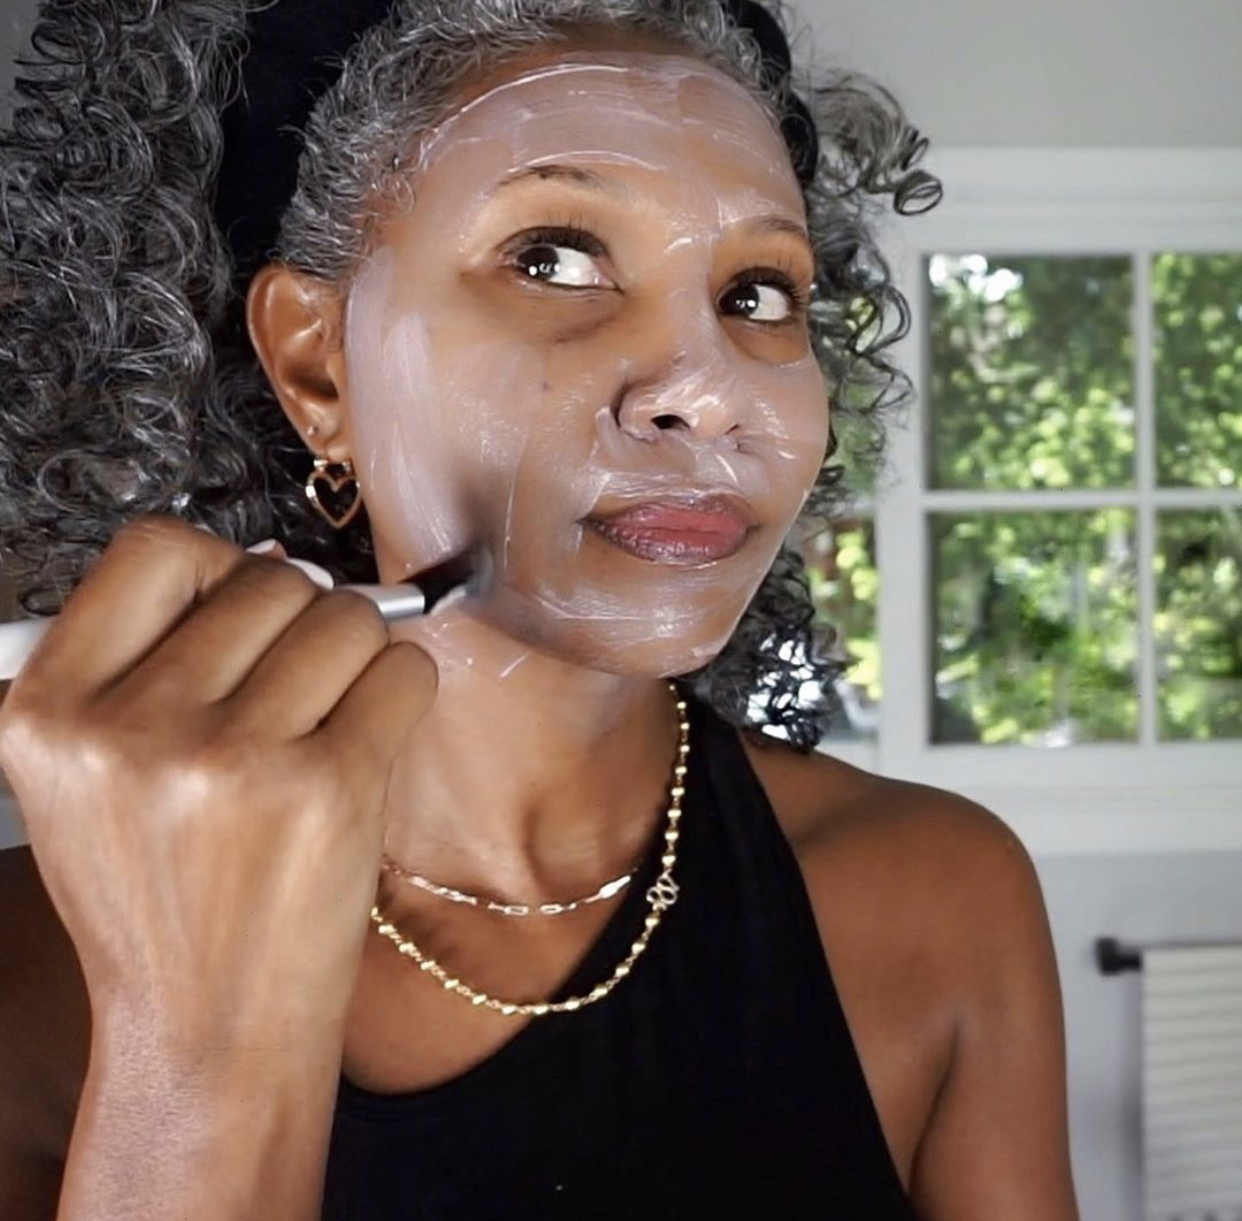 Get The Look: At Home Facial Treatment With Lifestyle Blogger The Tennille Life